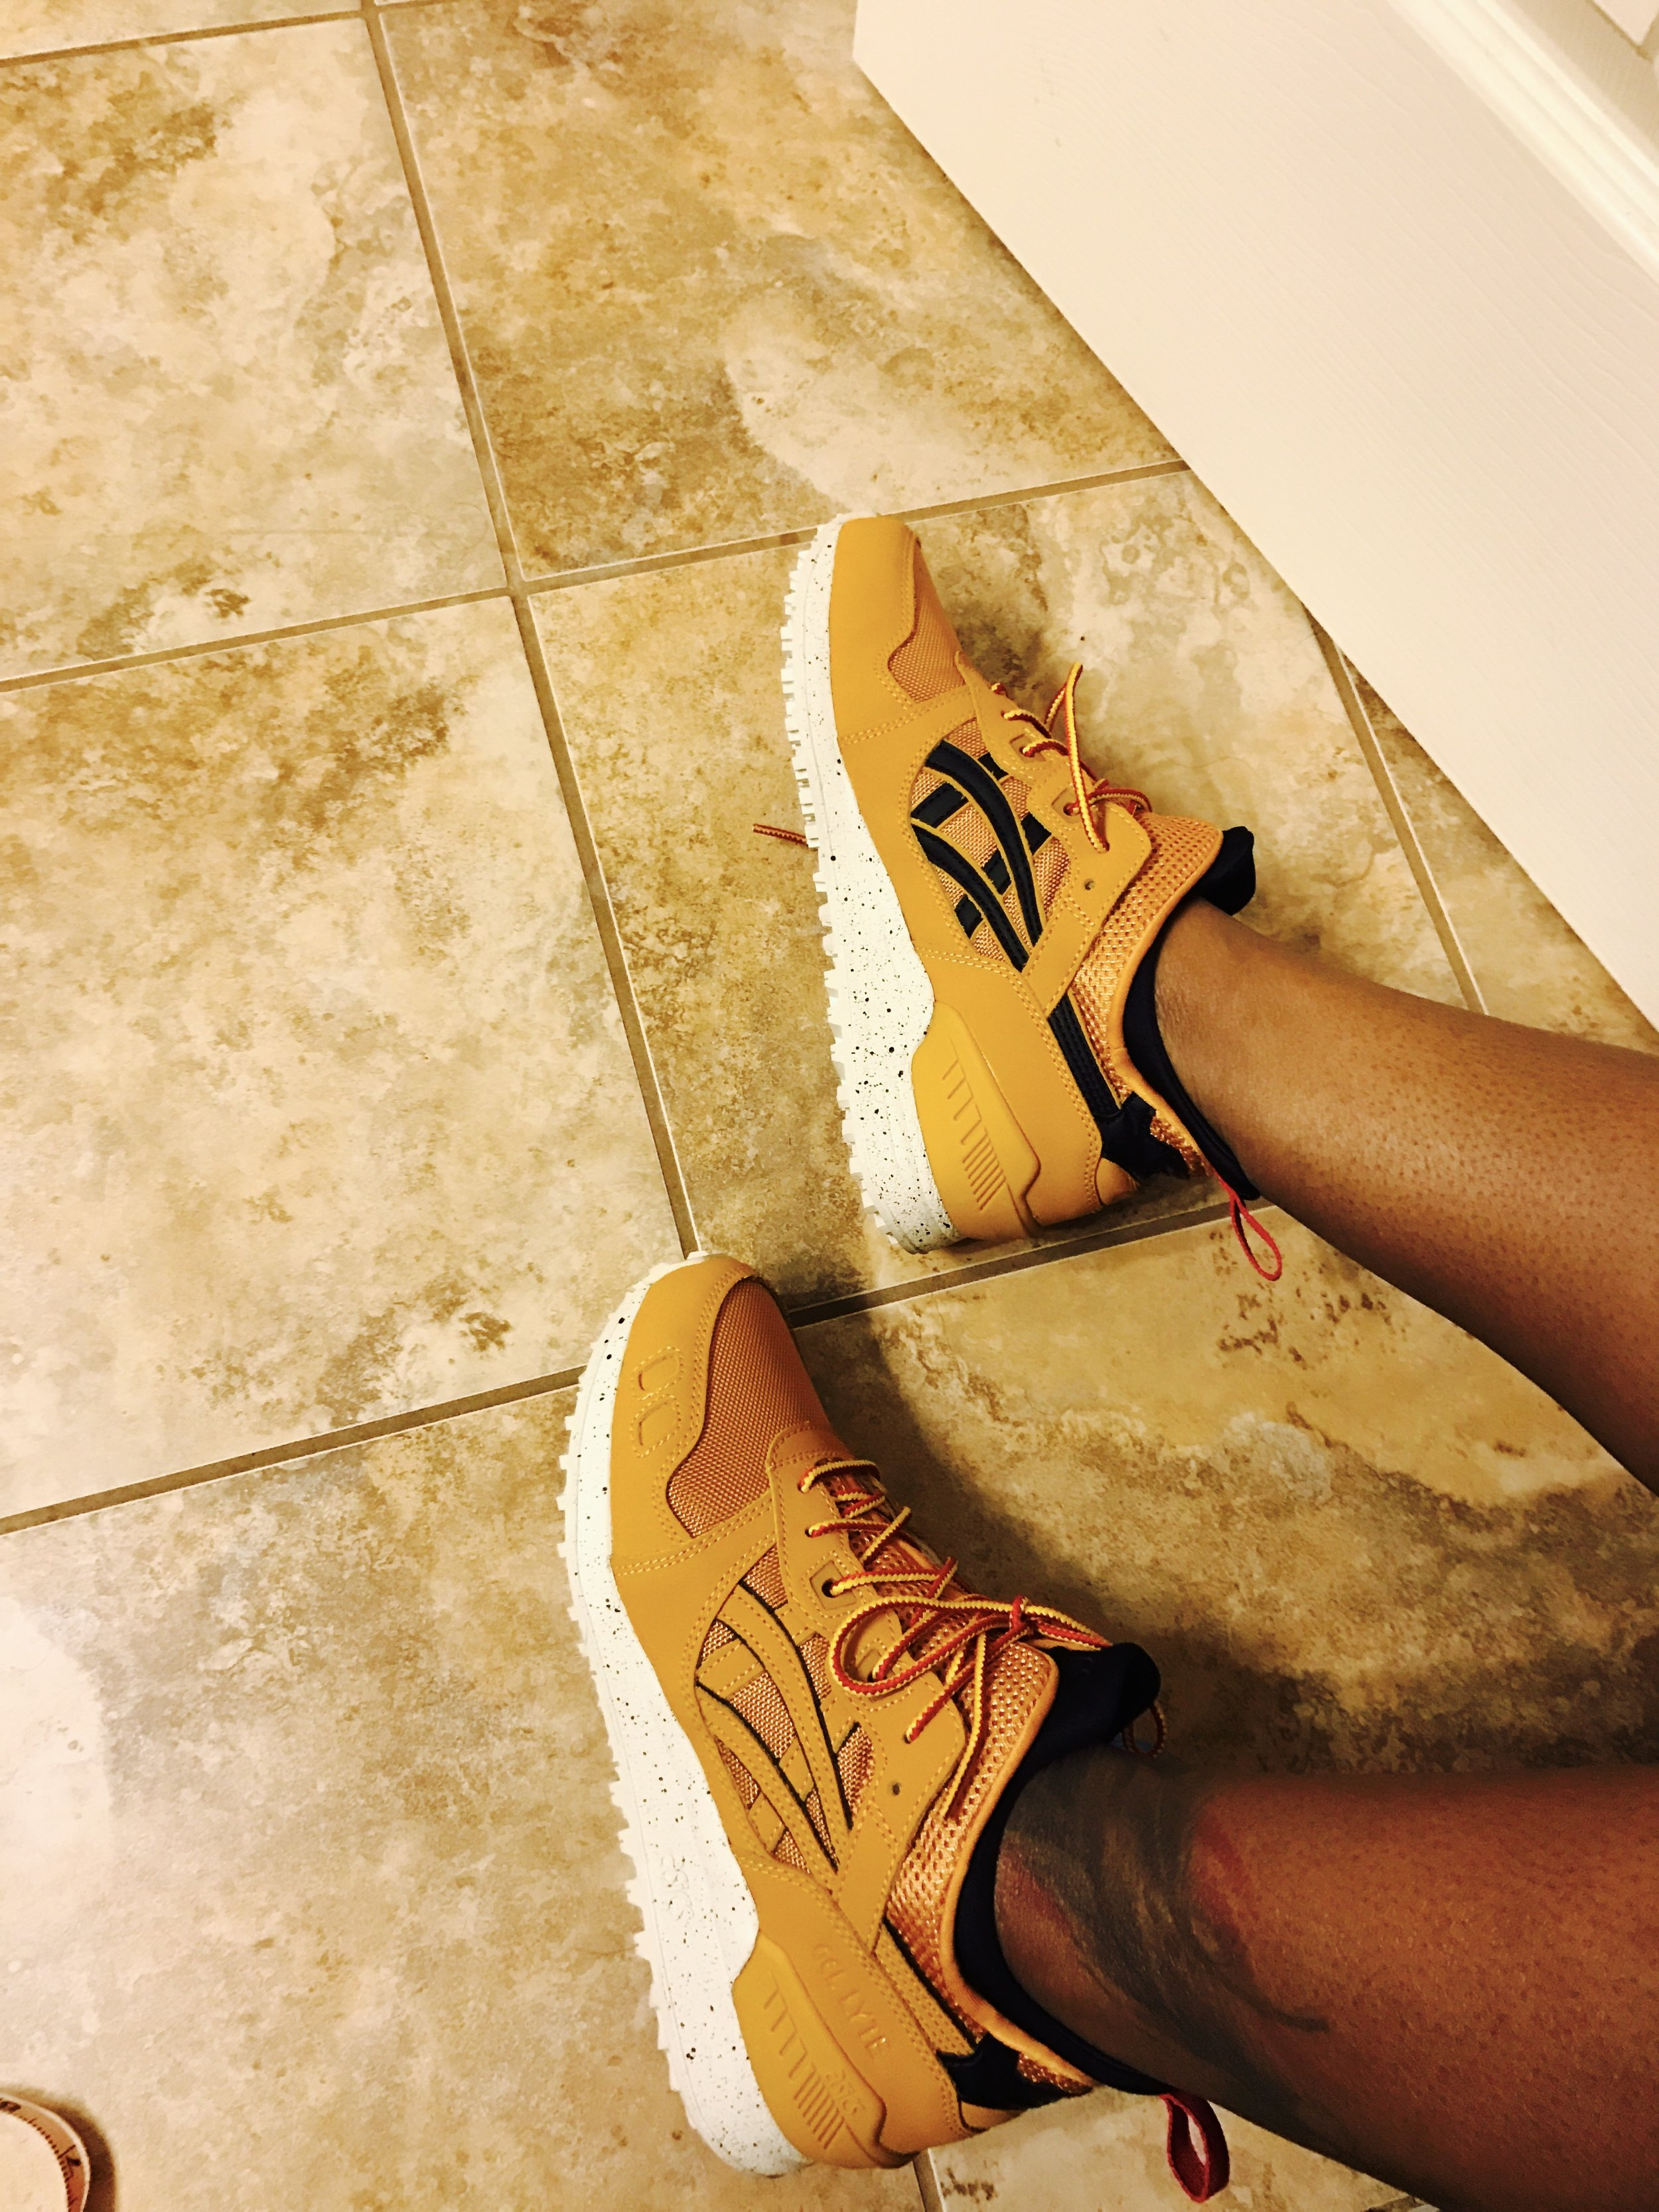 """I've been sleeping on ASICS. And I didn't know that ASICS is an acronym derived from the Latin phrase, """"Anima Sana In Corpore Sano"""" - a sound mind in a sound body. At least, that's what the tag said. Pretty fitting for my goals at this moment. Maybe if I wear these, my body will be healed."""